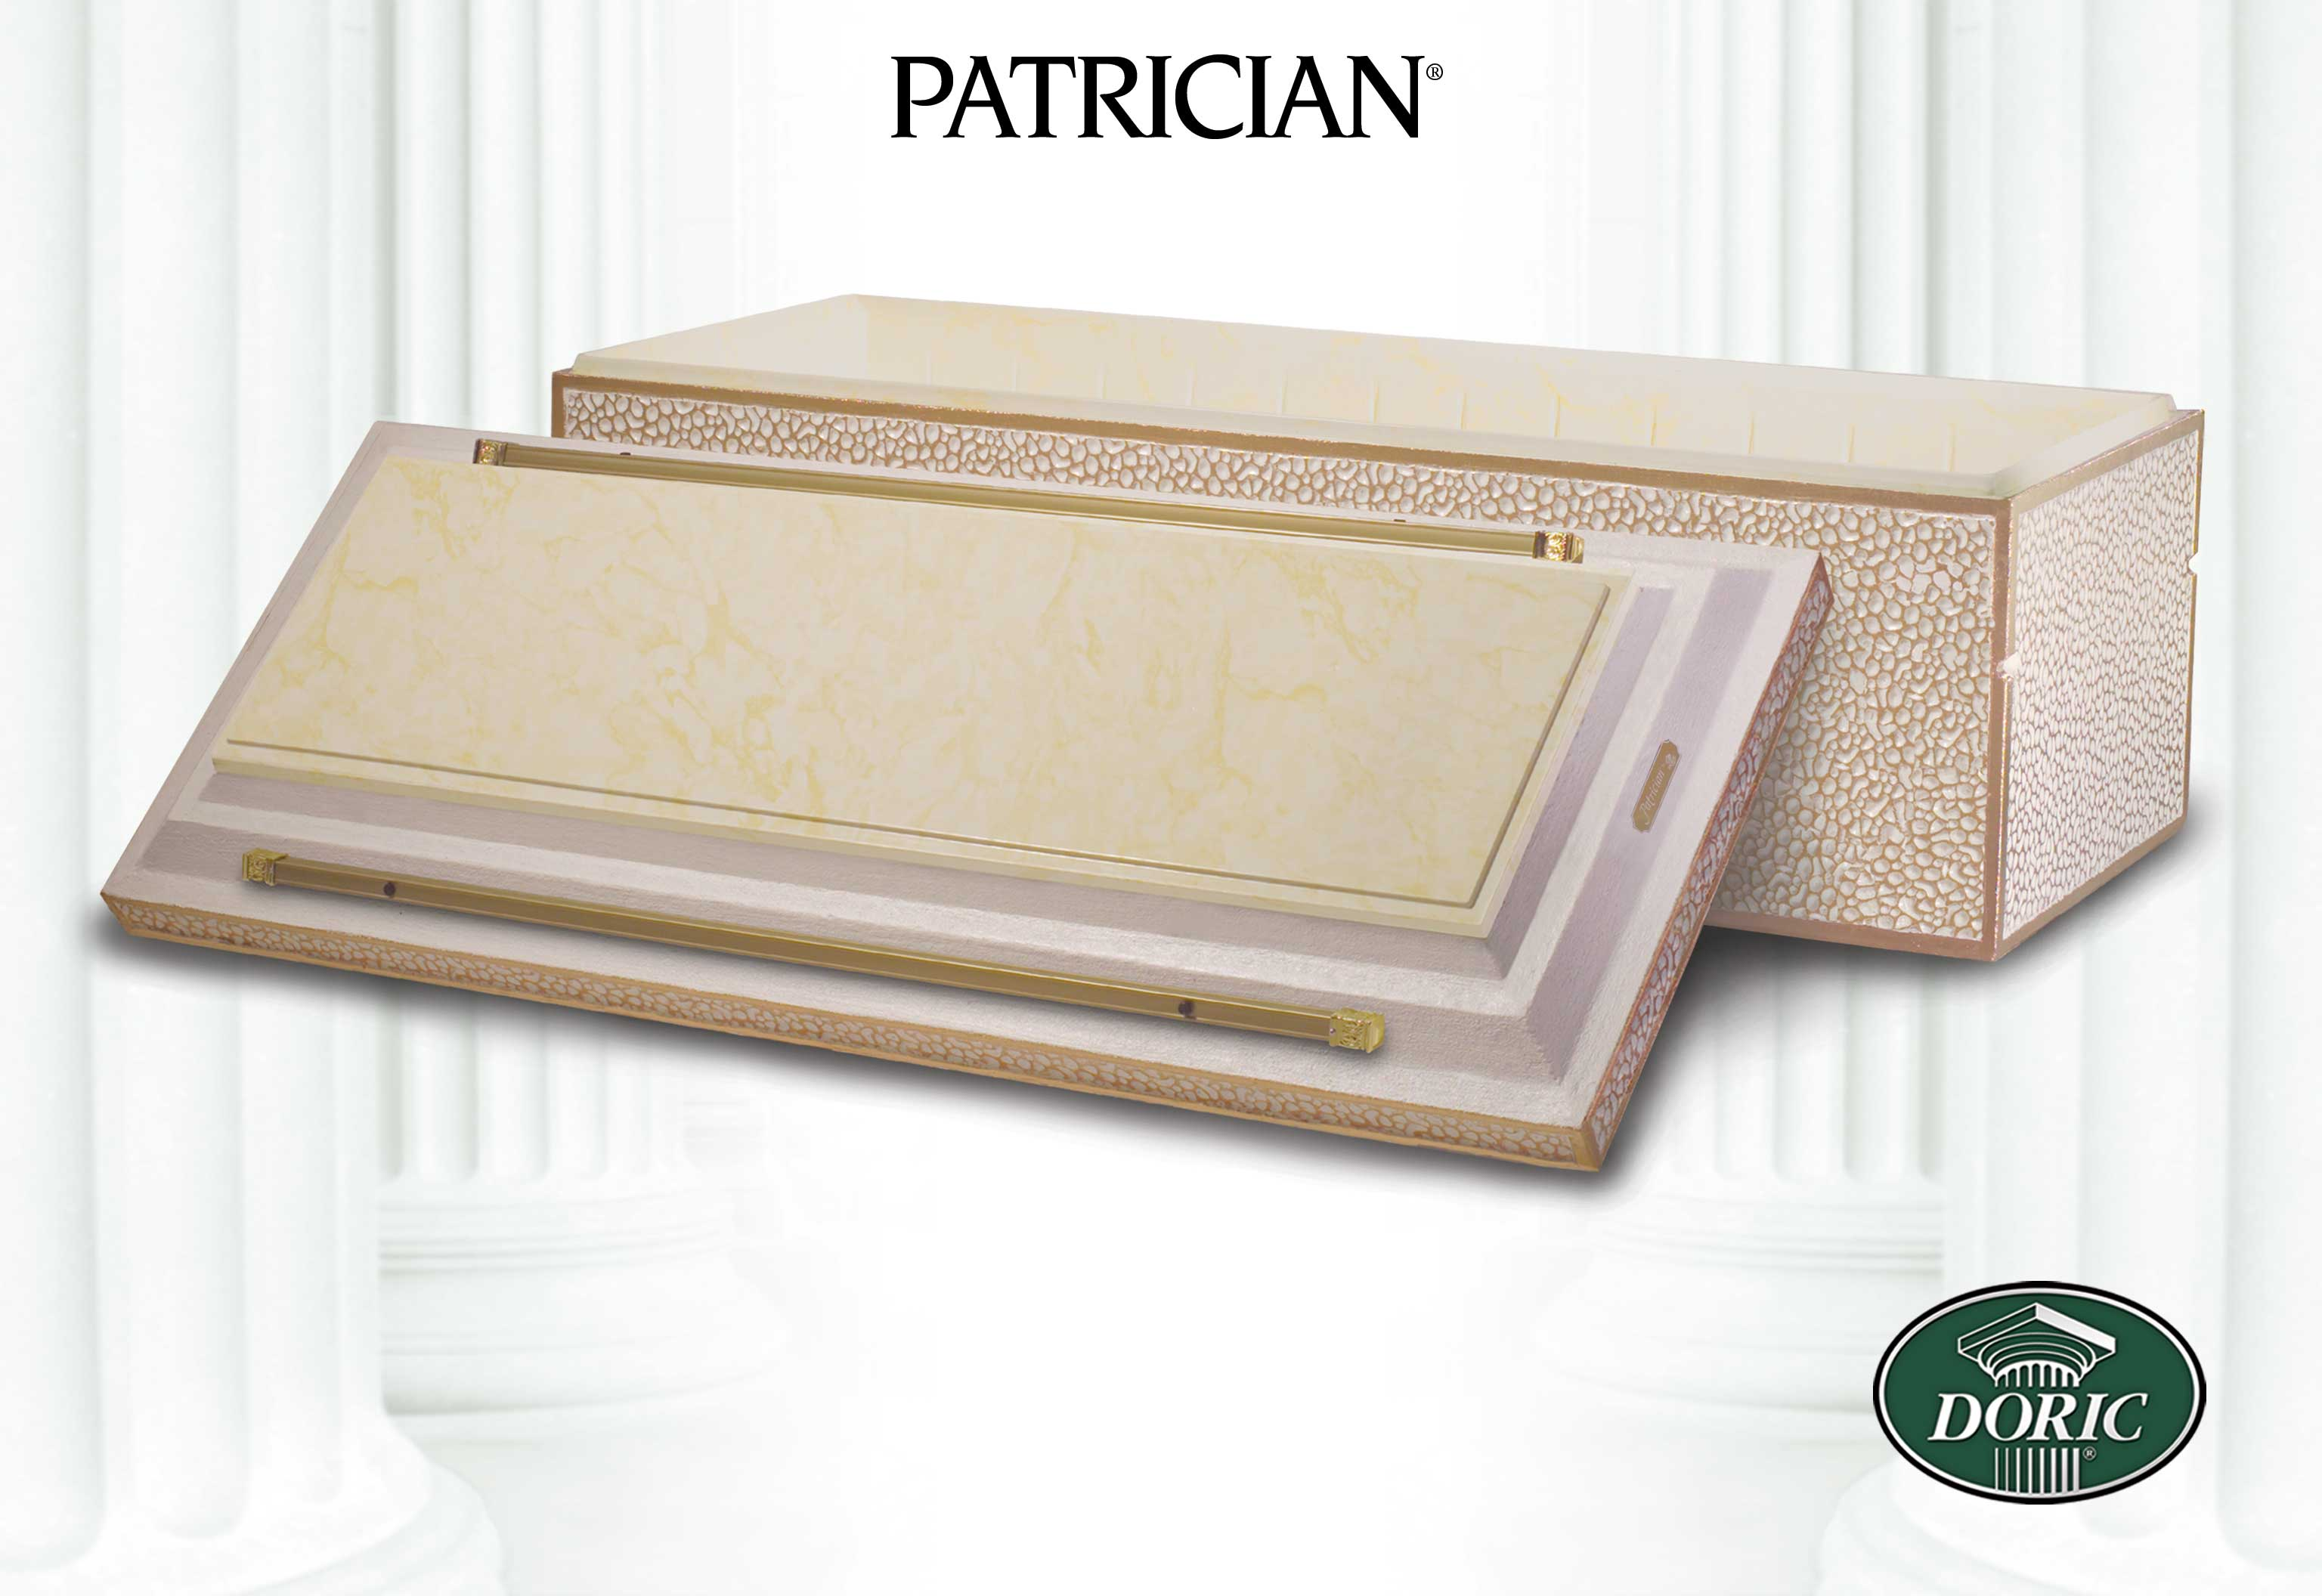 Patrician Gold